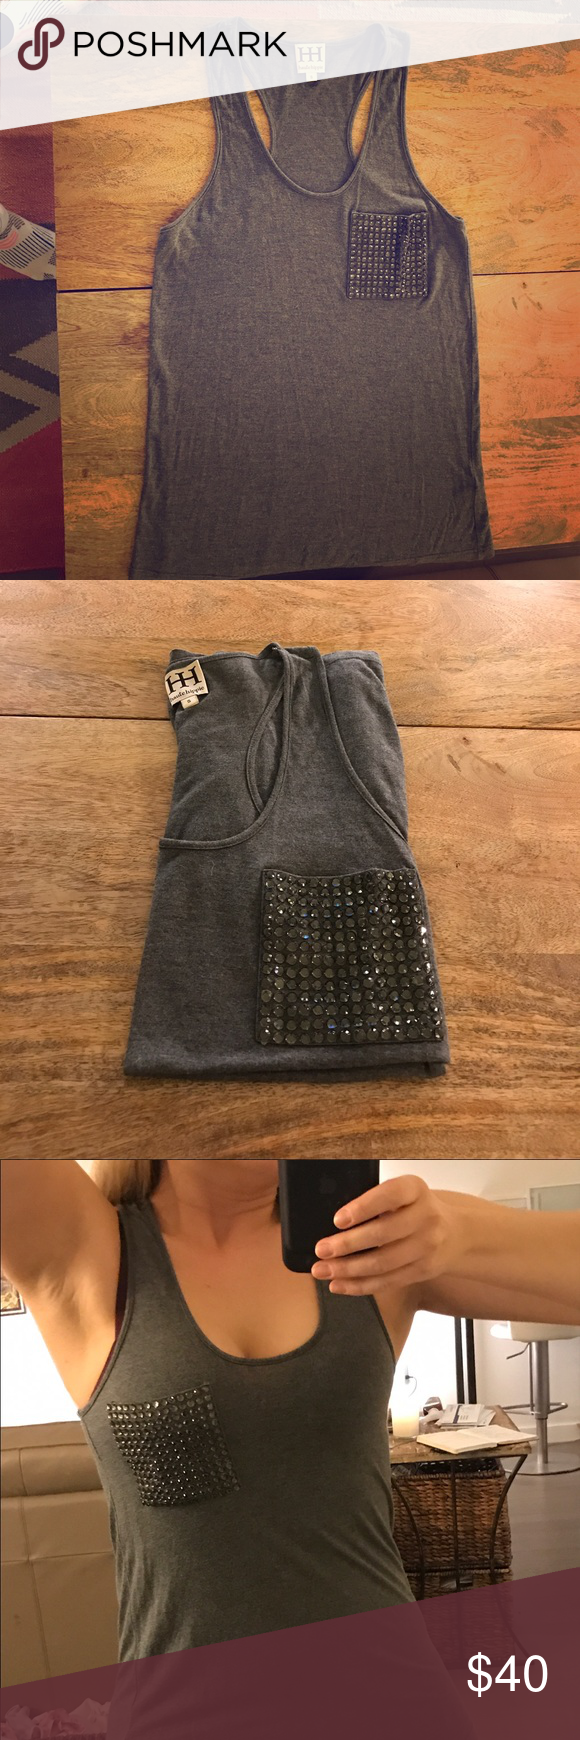 Haute Hippie Jeweled Racerback Top Heather gray super soft racerback Haute Hippie top. Only a couple of times, still like new. Just a little snug for me. Great with jeans, pumps and a blazer - The perfect dressy casual mixing piece.size small Haute Hippie Tops